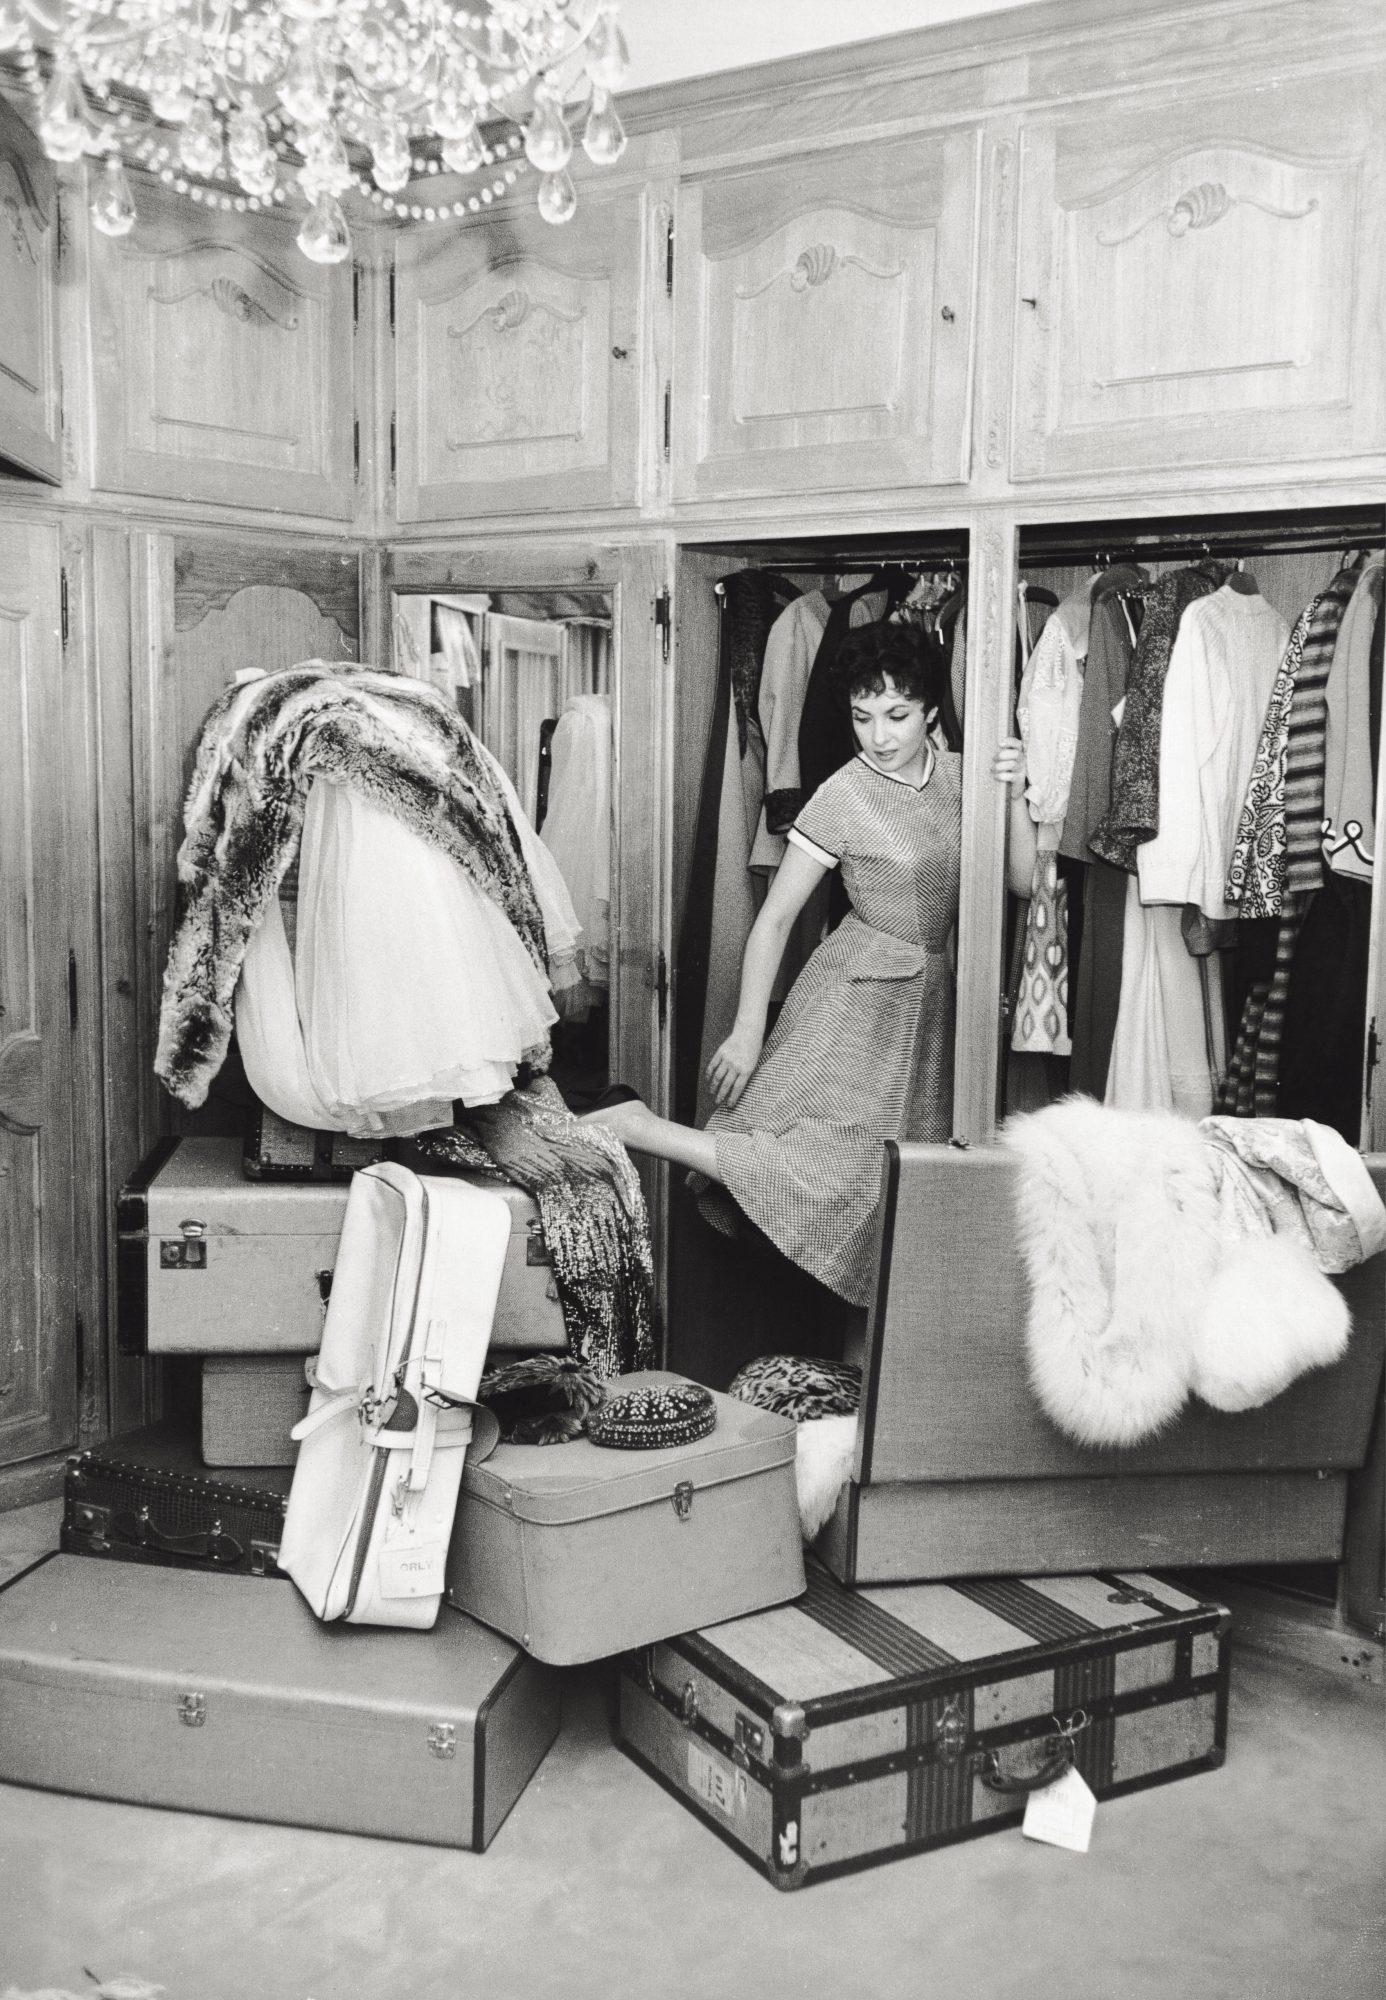 Woman in Wardrobe with Clothes